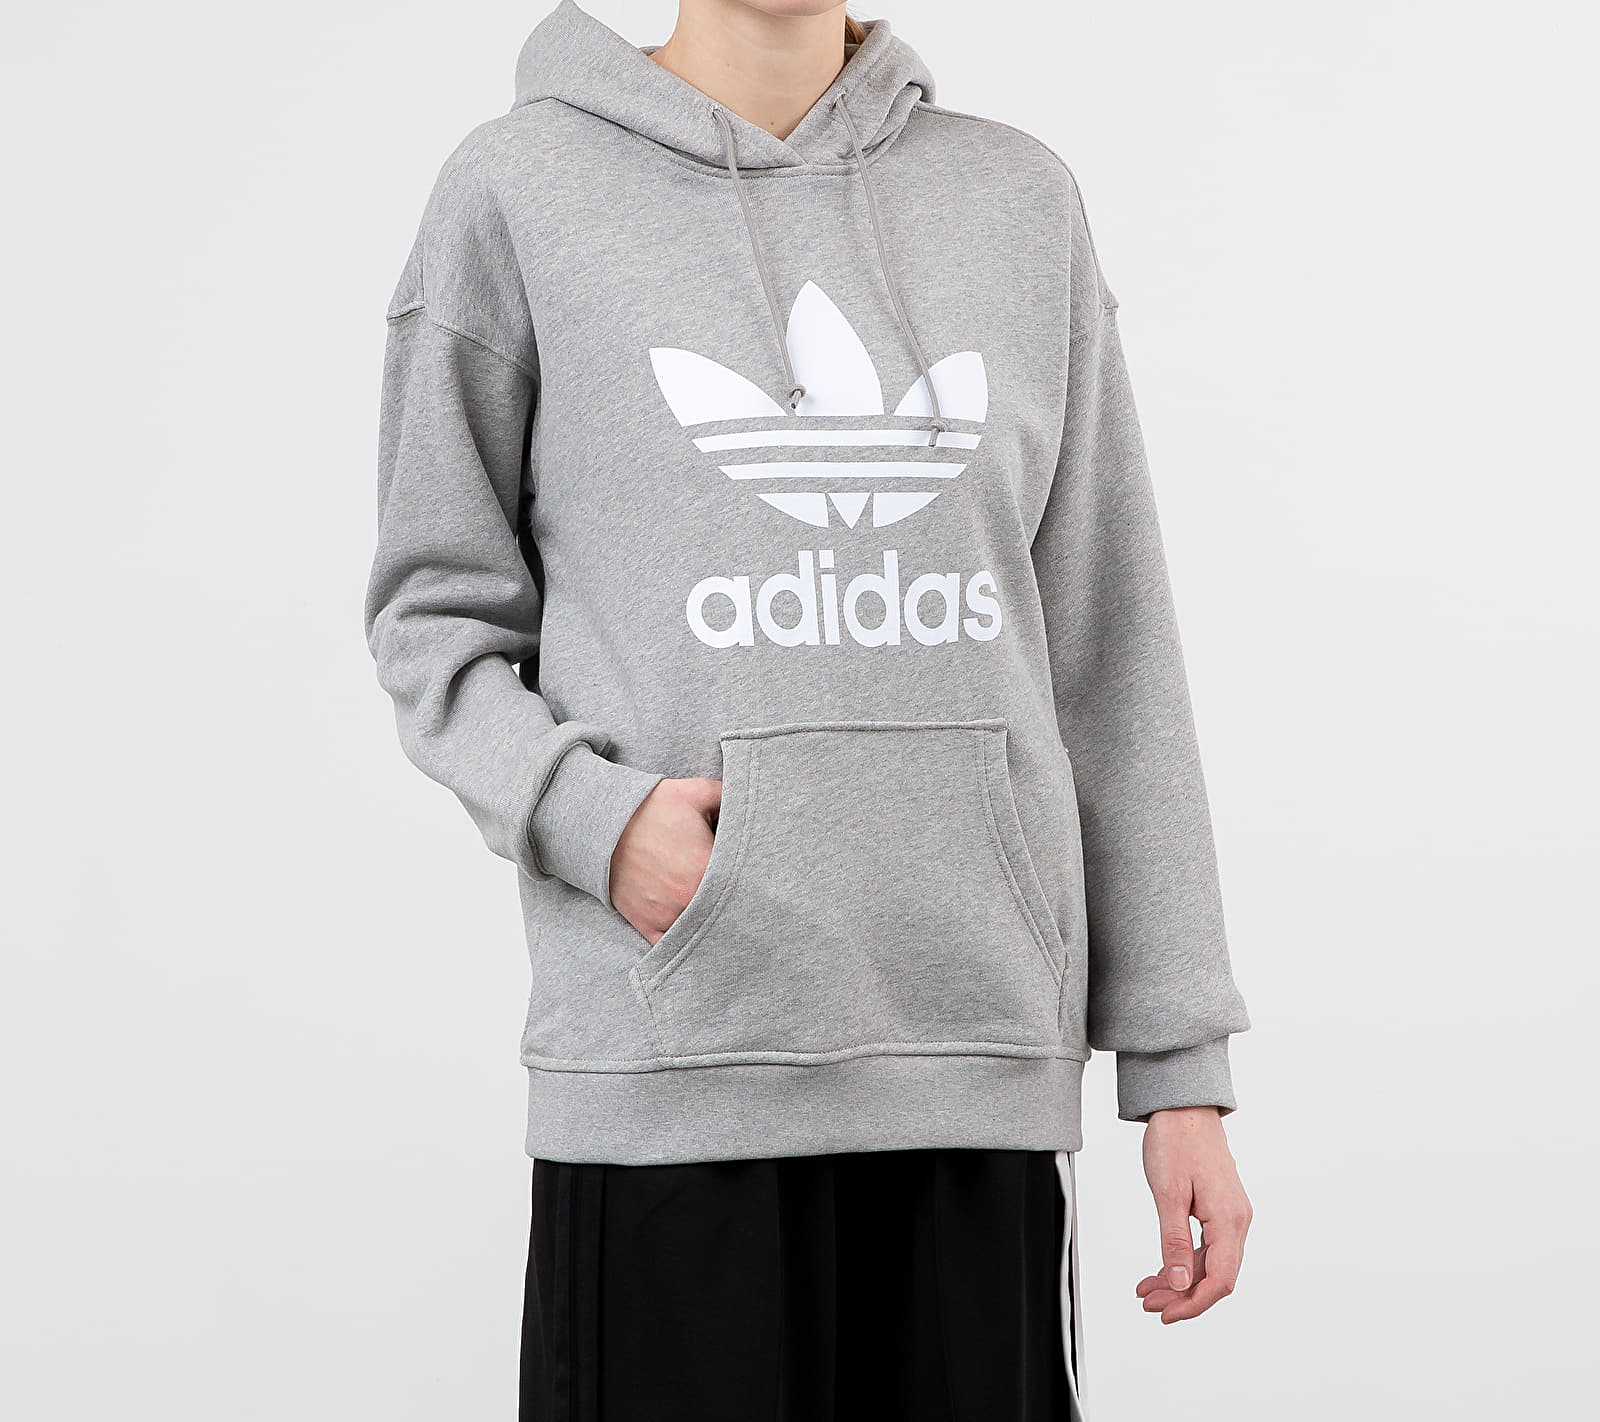 adidas Trefoil Hoodie Medium Grey Heather/ White 40